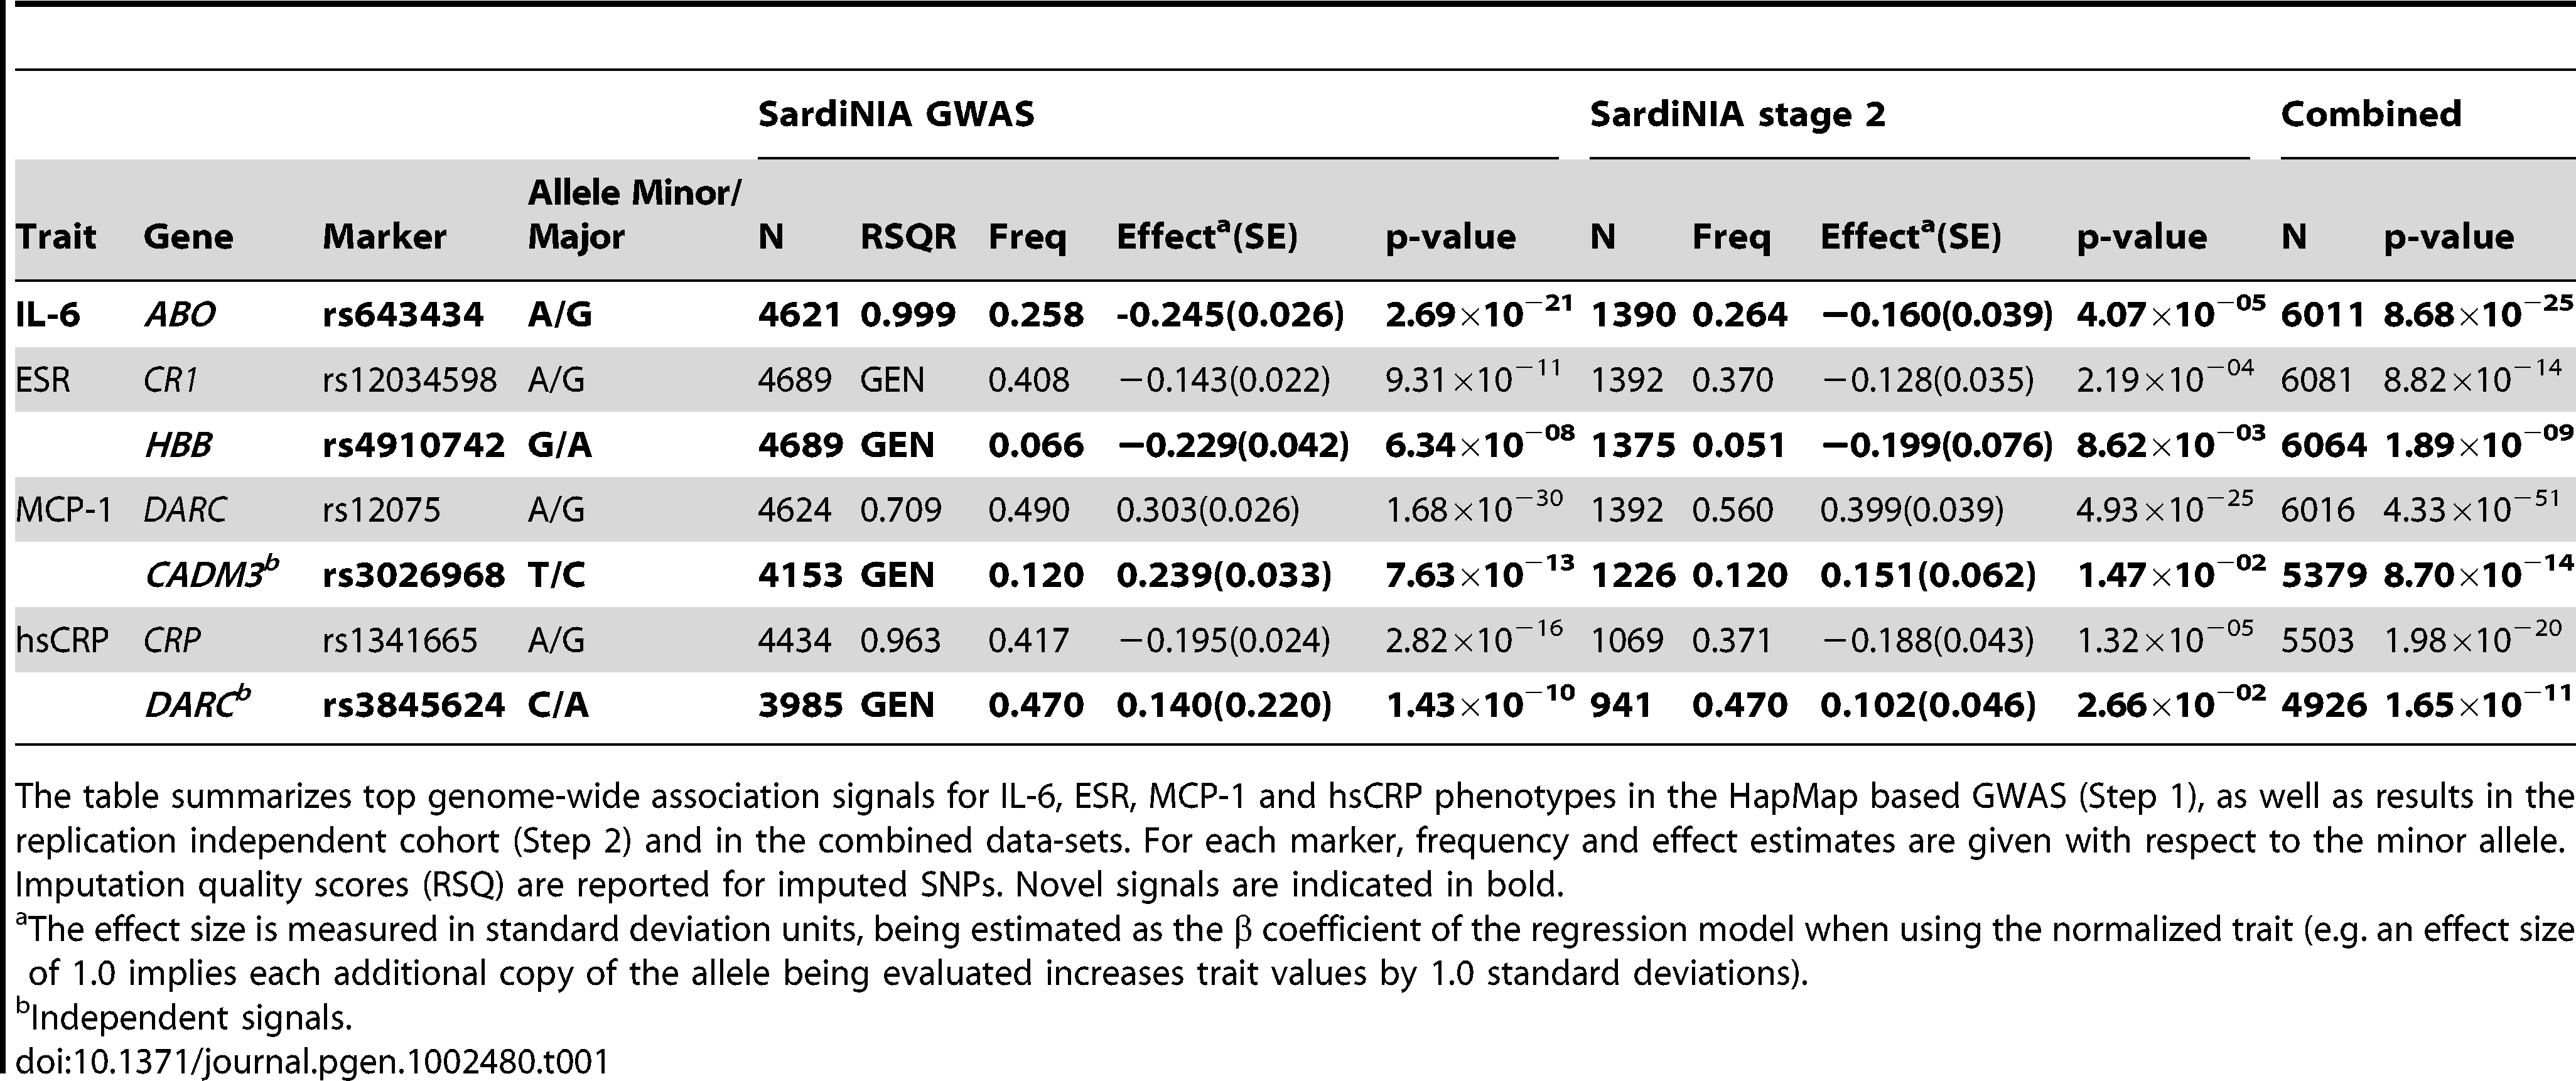 Top genome-wide association results for IL-6, ESR, MCP-1, and hsCRP.